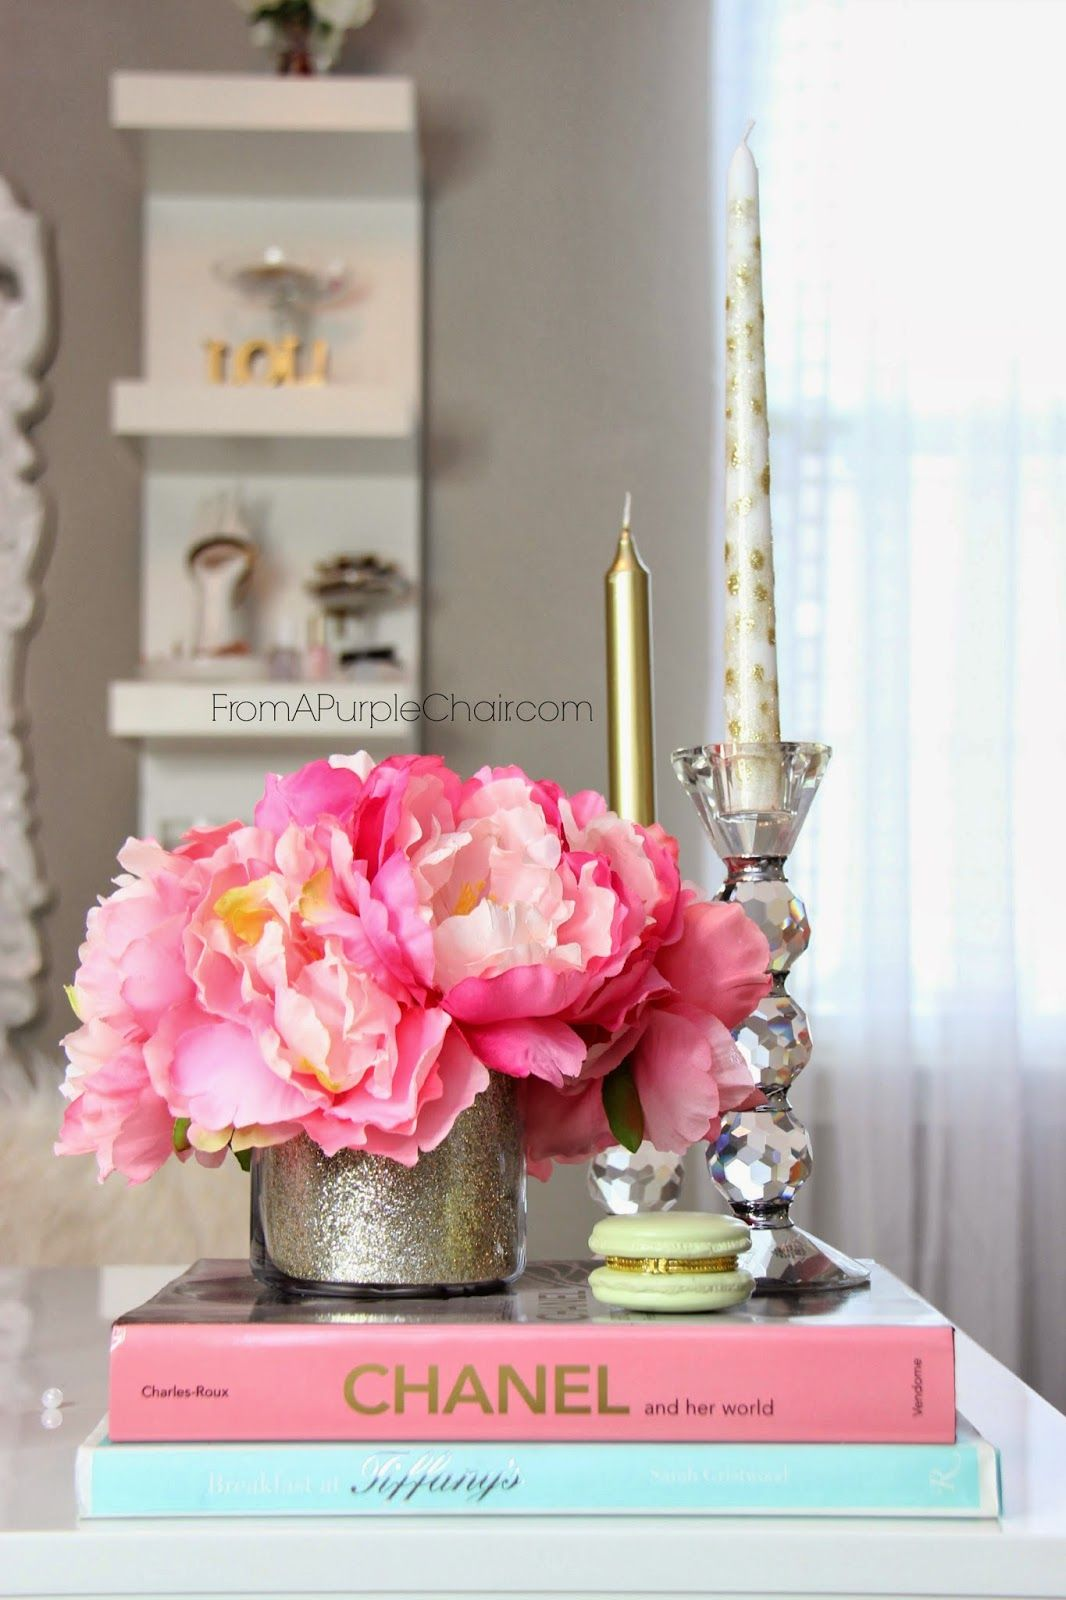 Glamorous Decorations For A Girly Office Makeup Room Vanity No Place Like Home Pinterest